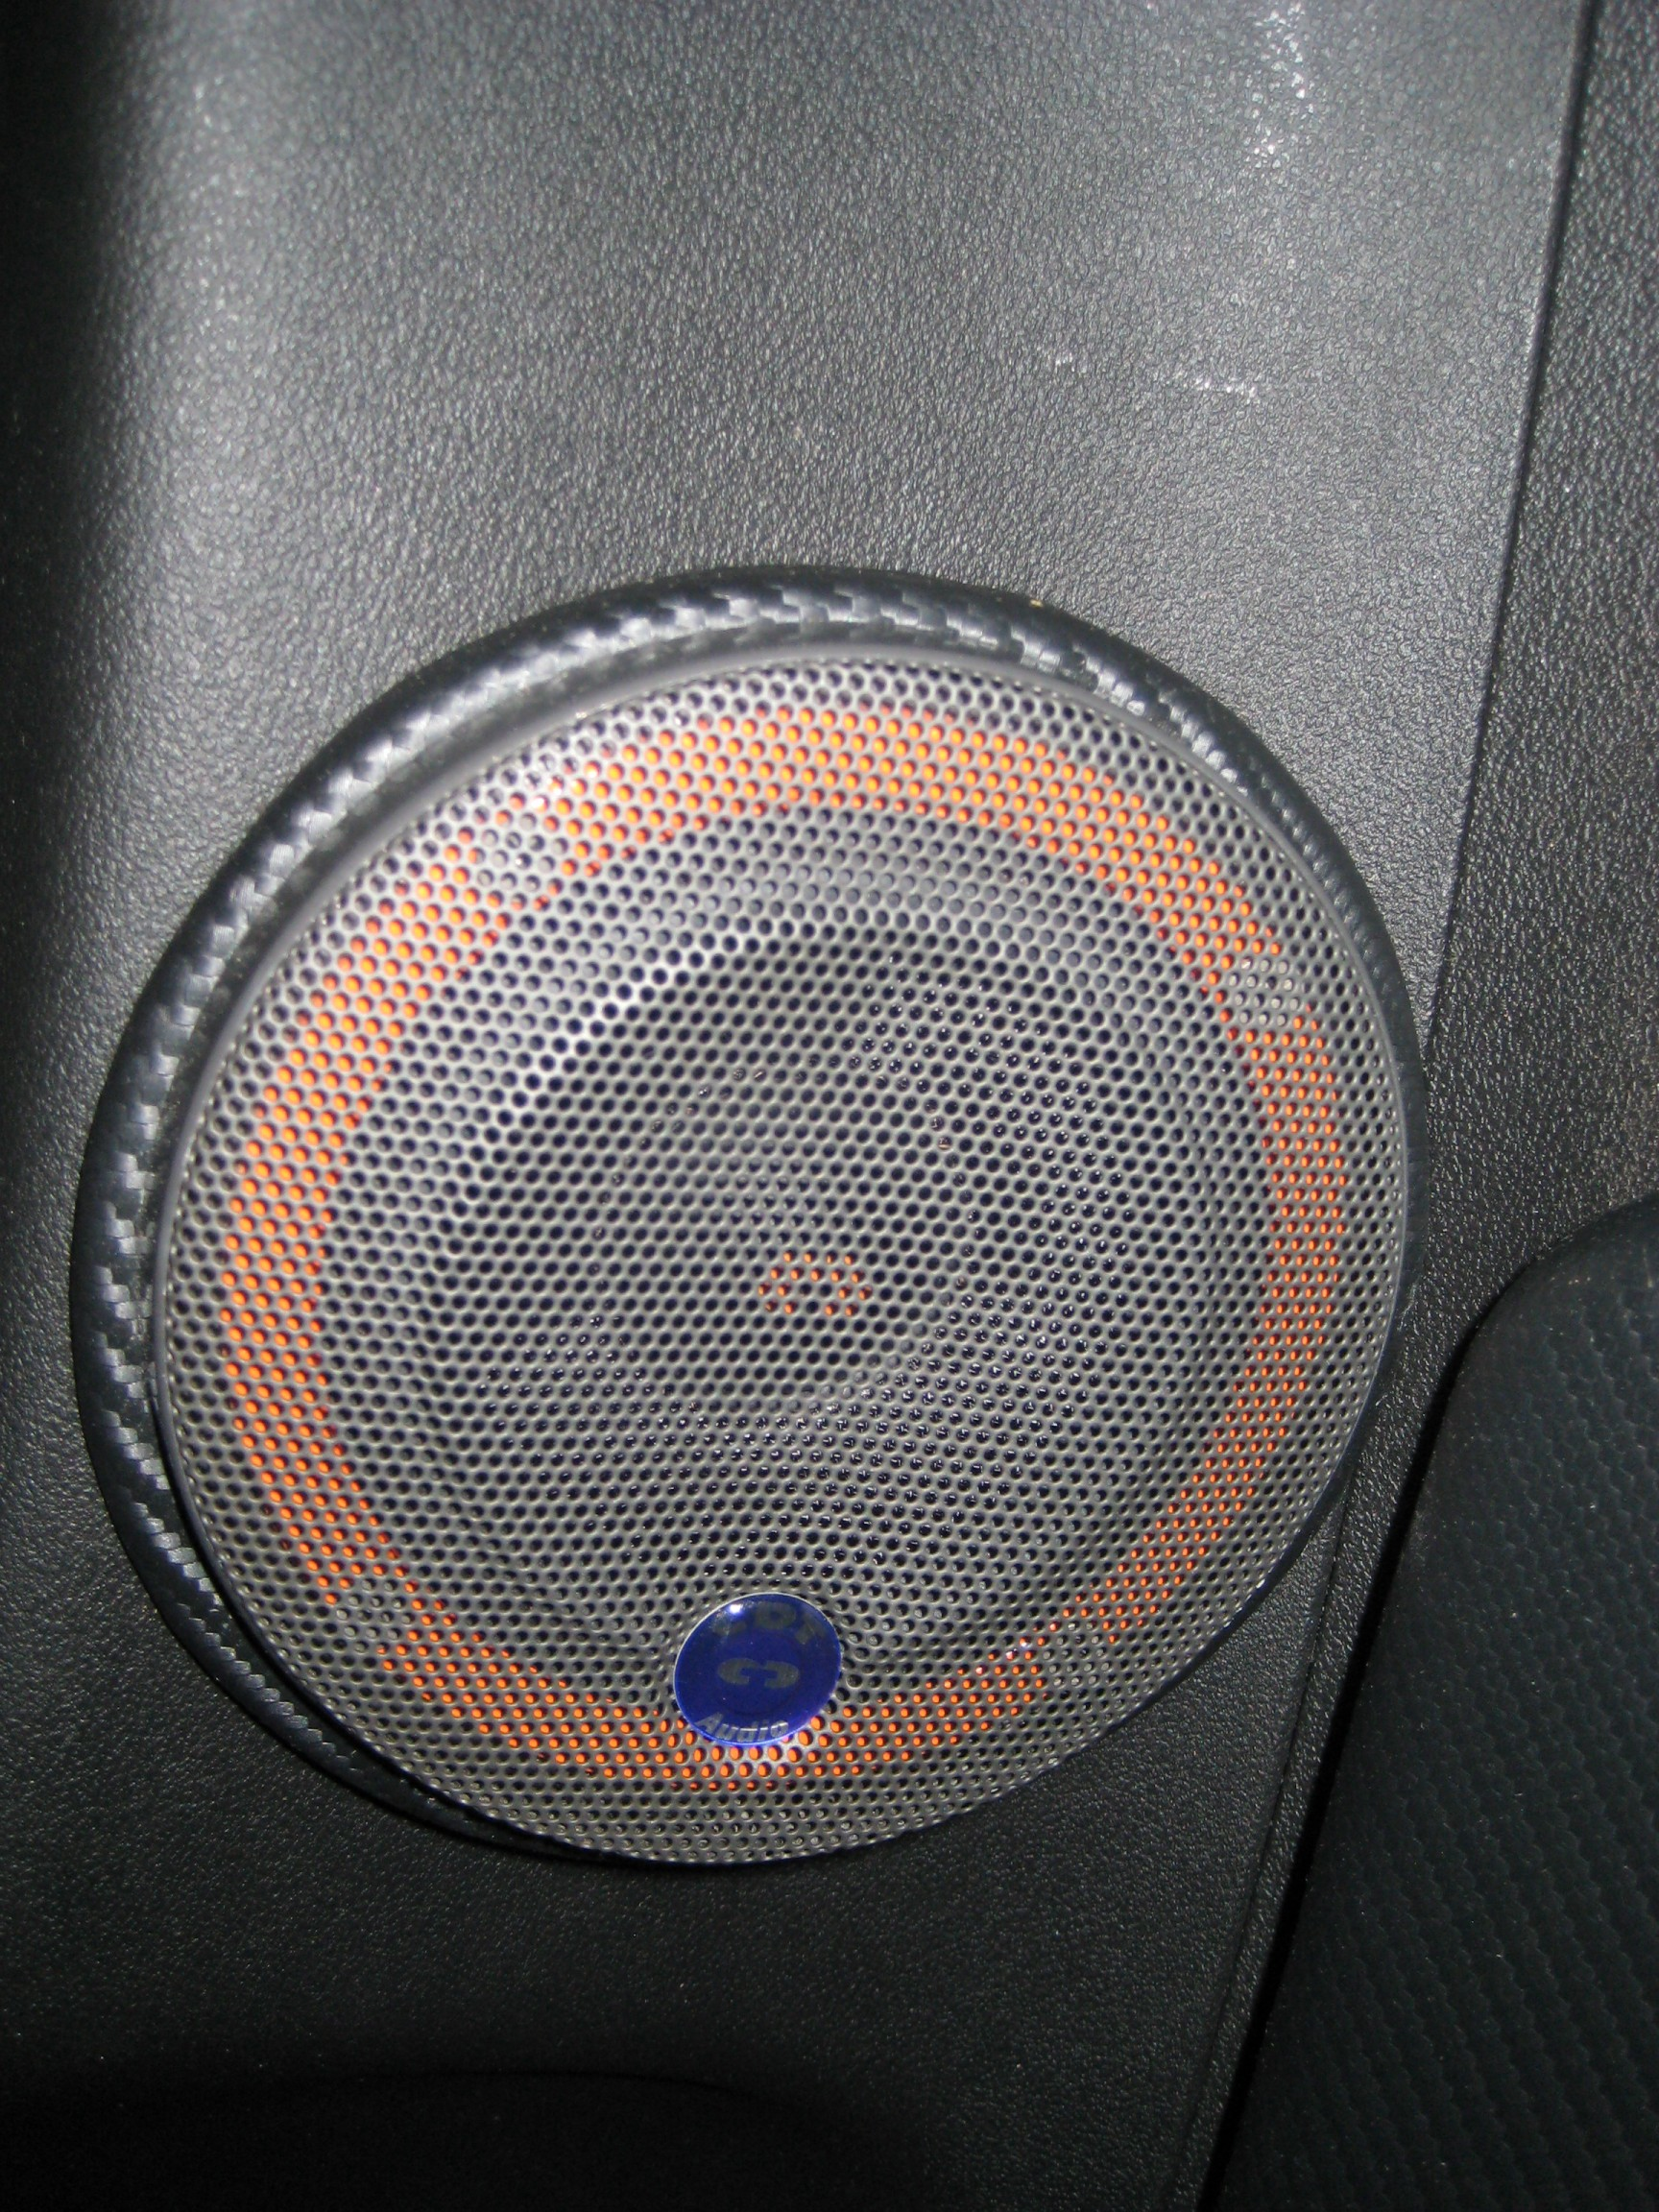 Speaker Upgrade/Custom Subwoofer Enclosure-034-1728-x-2304-.jpg